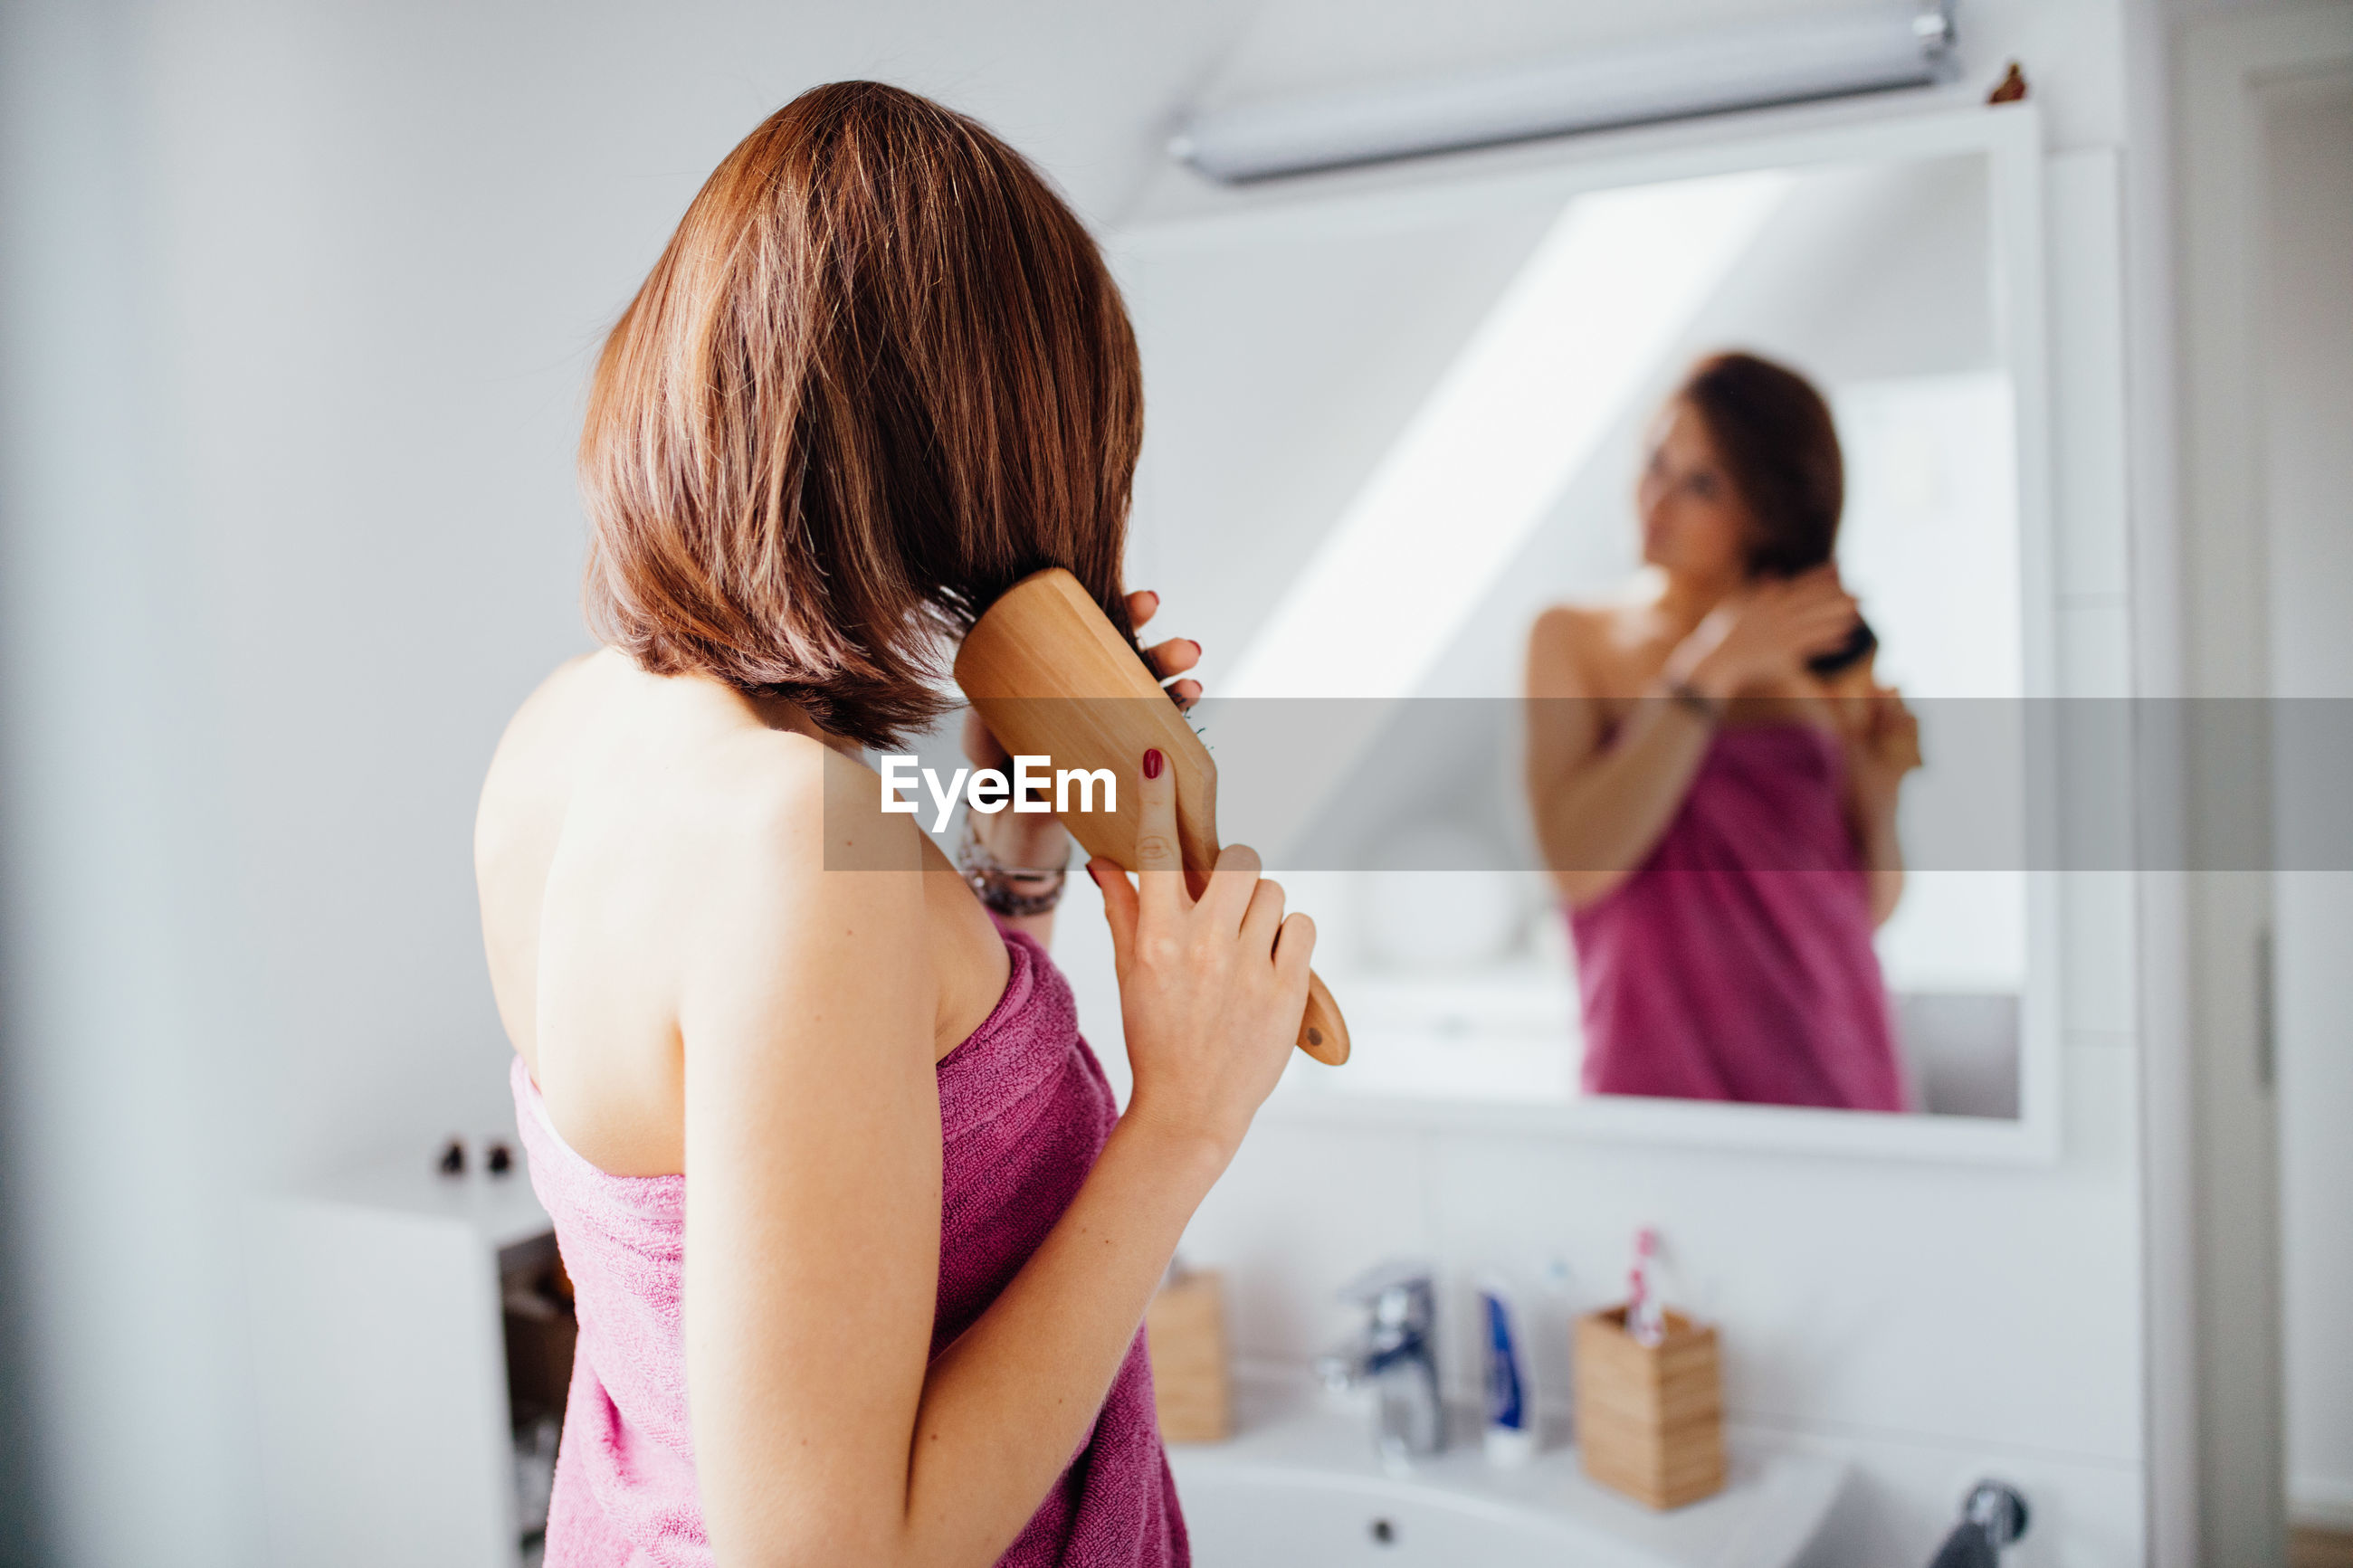 Reflection of woman combing hair in mirror